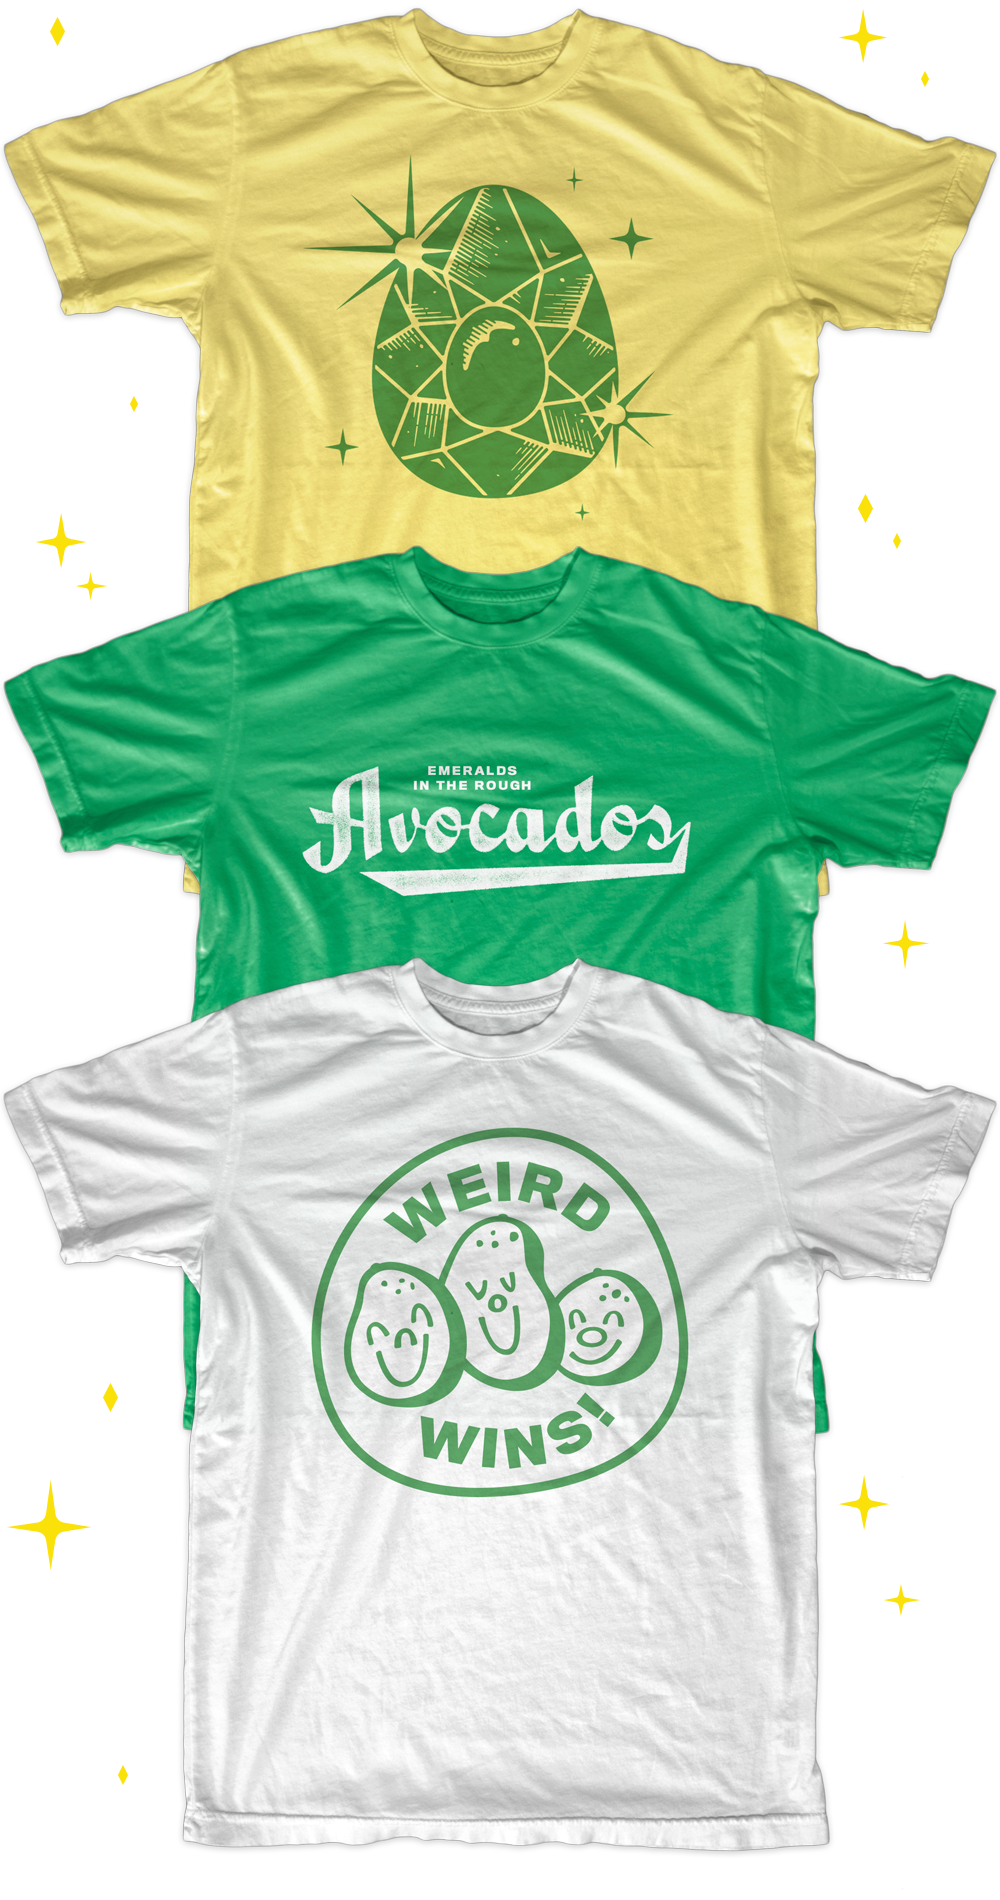 Emeralds_shirts.png